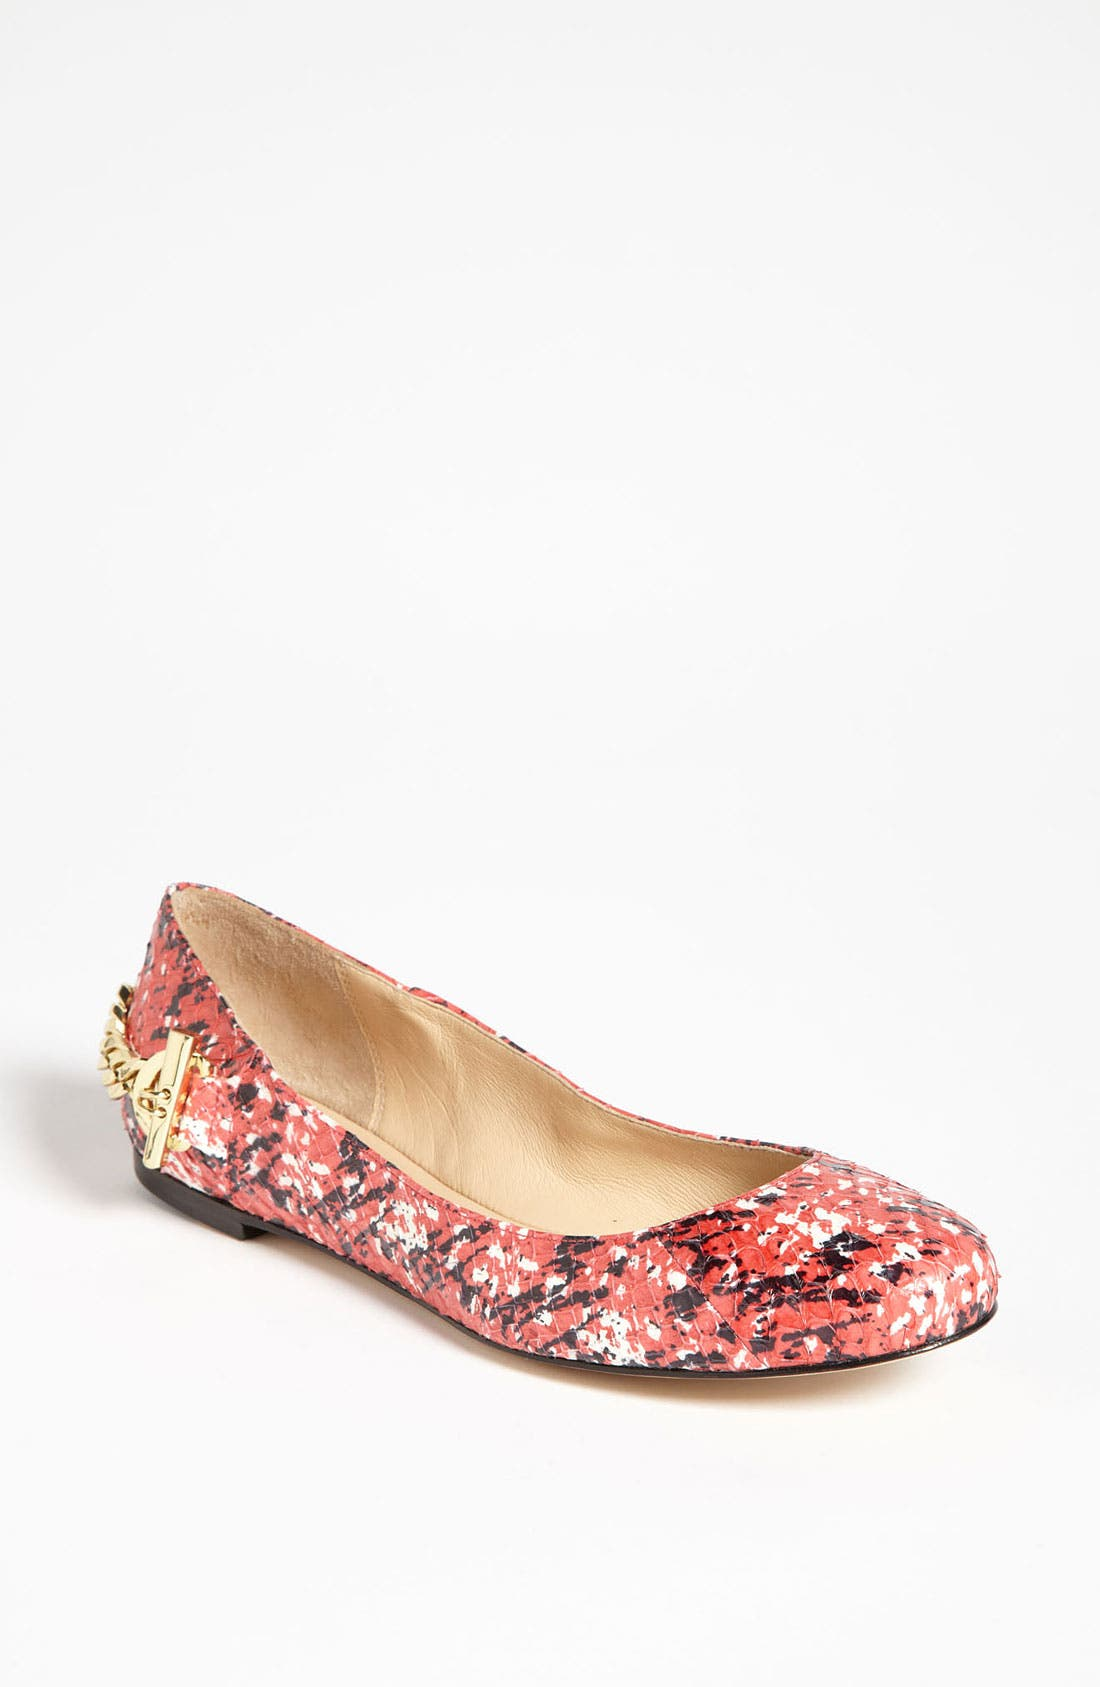 RACHEL ZOE 'Laura' Flat, Main, color, 600